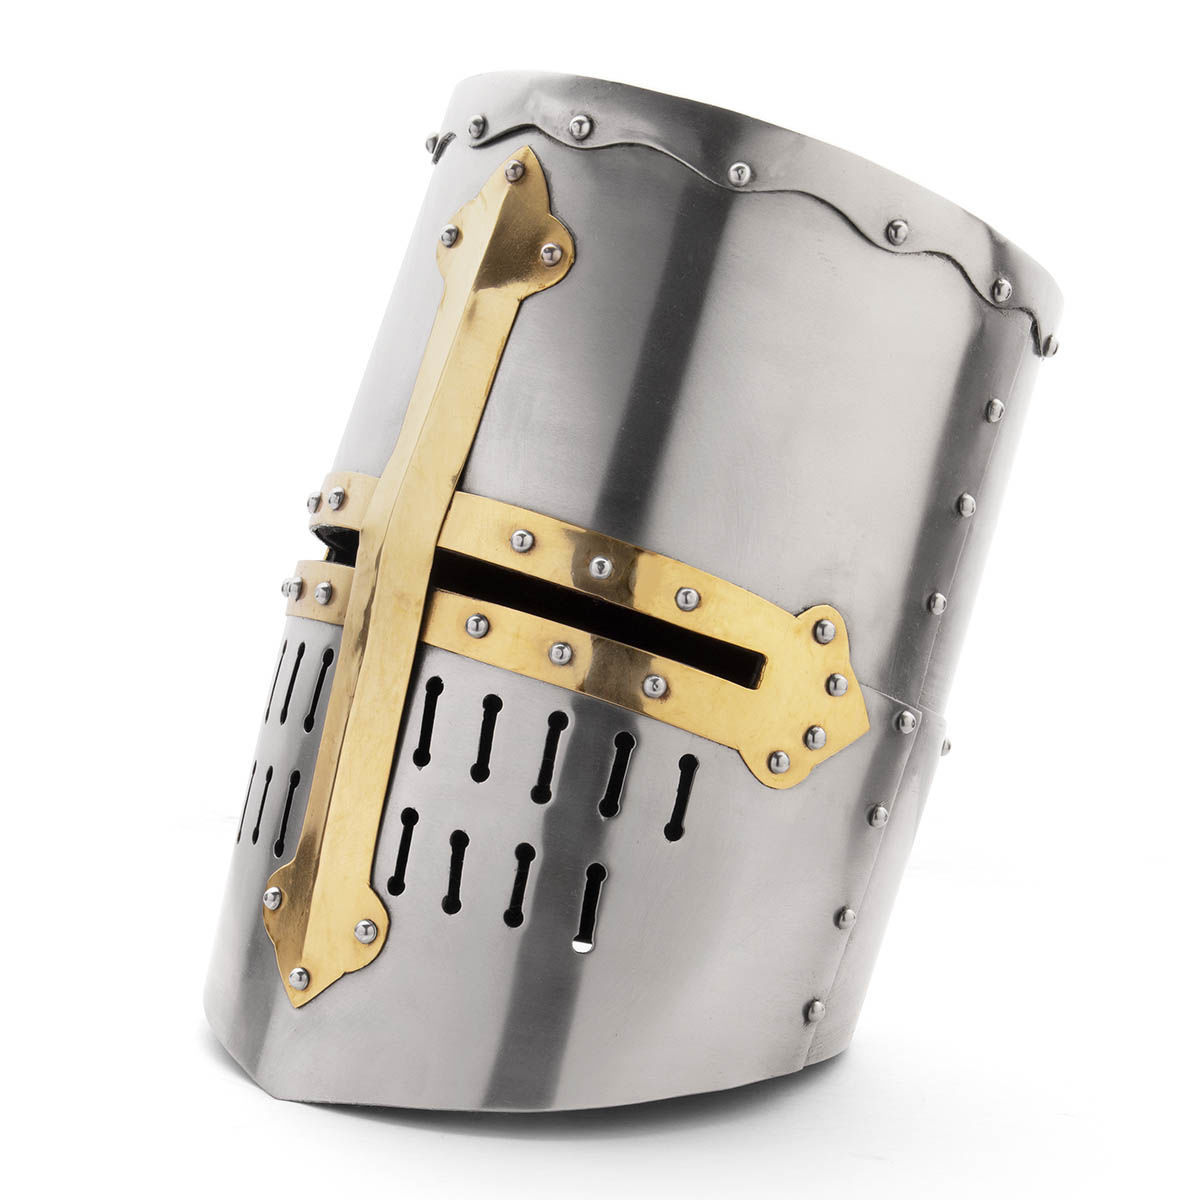 Medieval Great Helm in 18 gauge steel has narrow eye slits and brass reinforcing bands